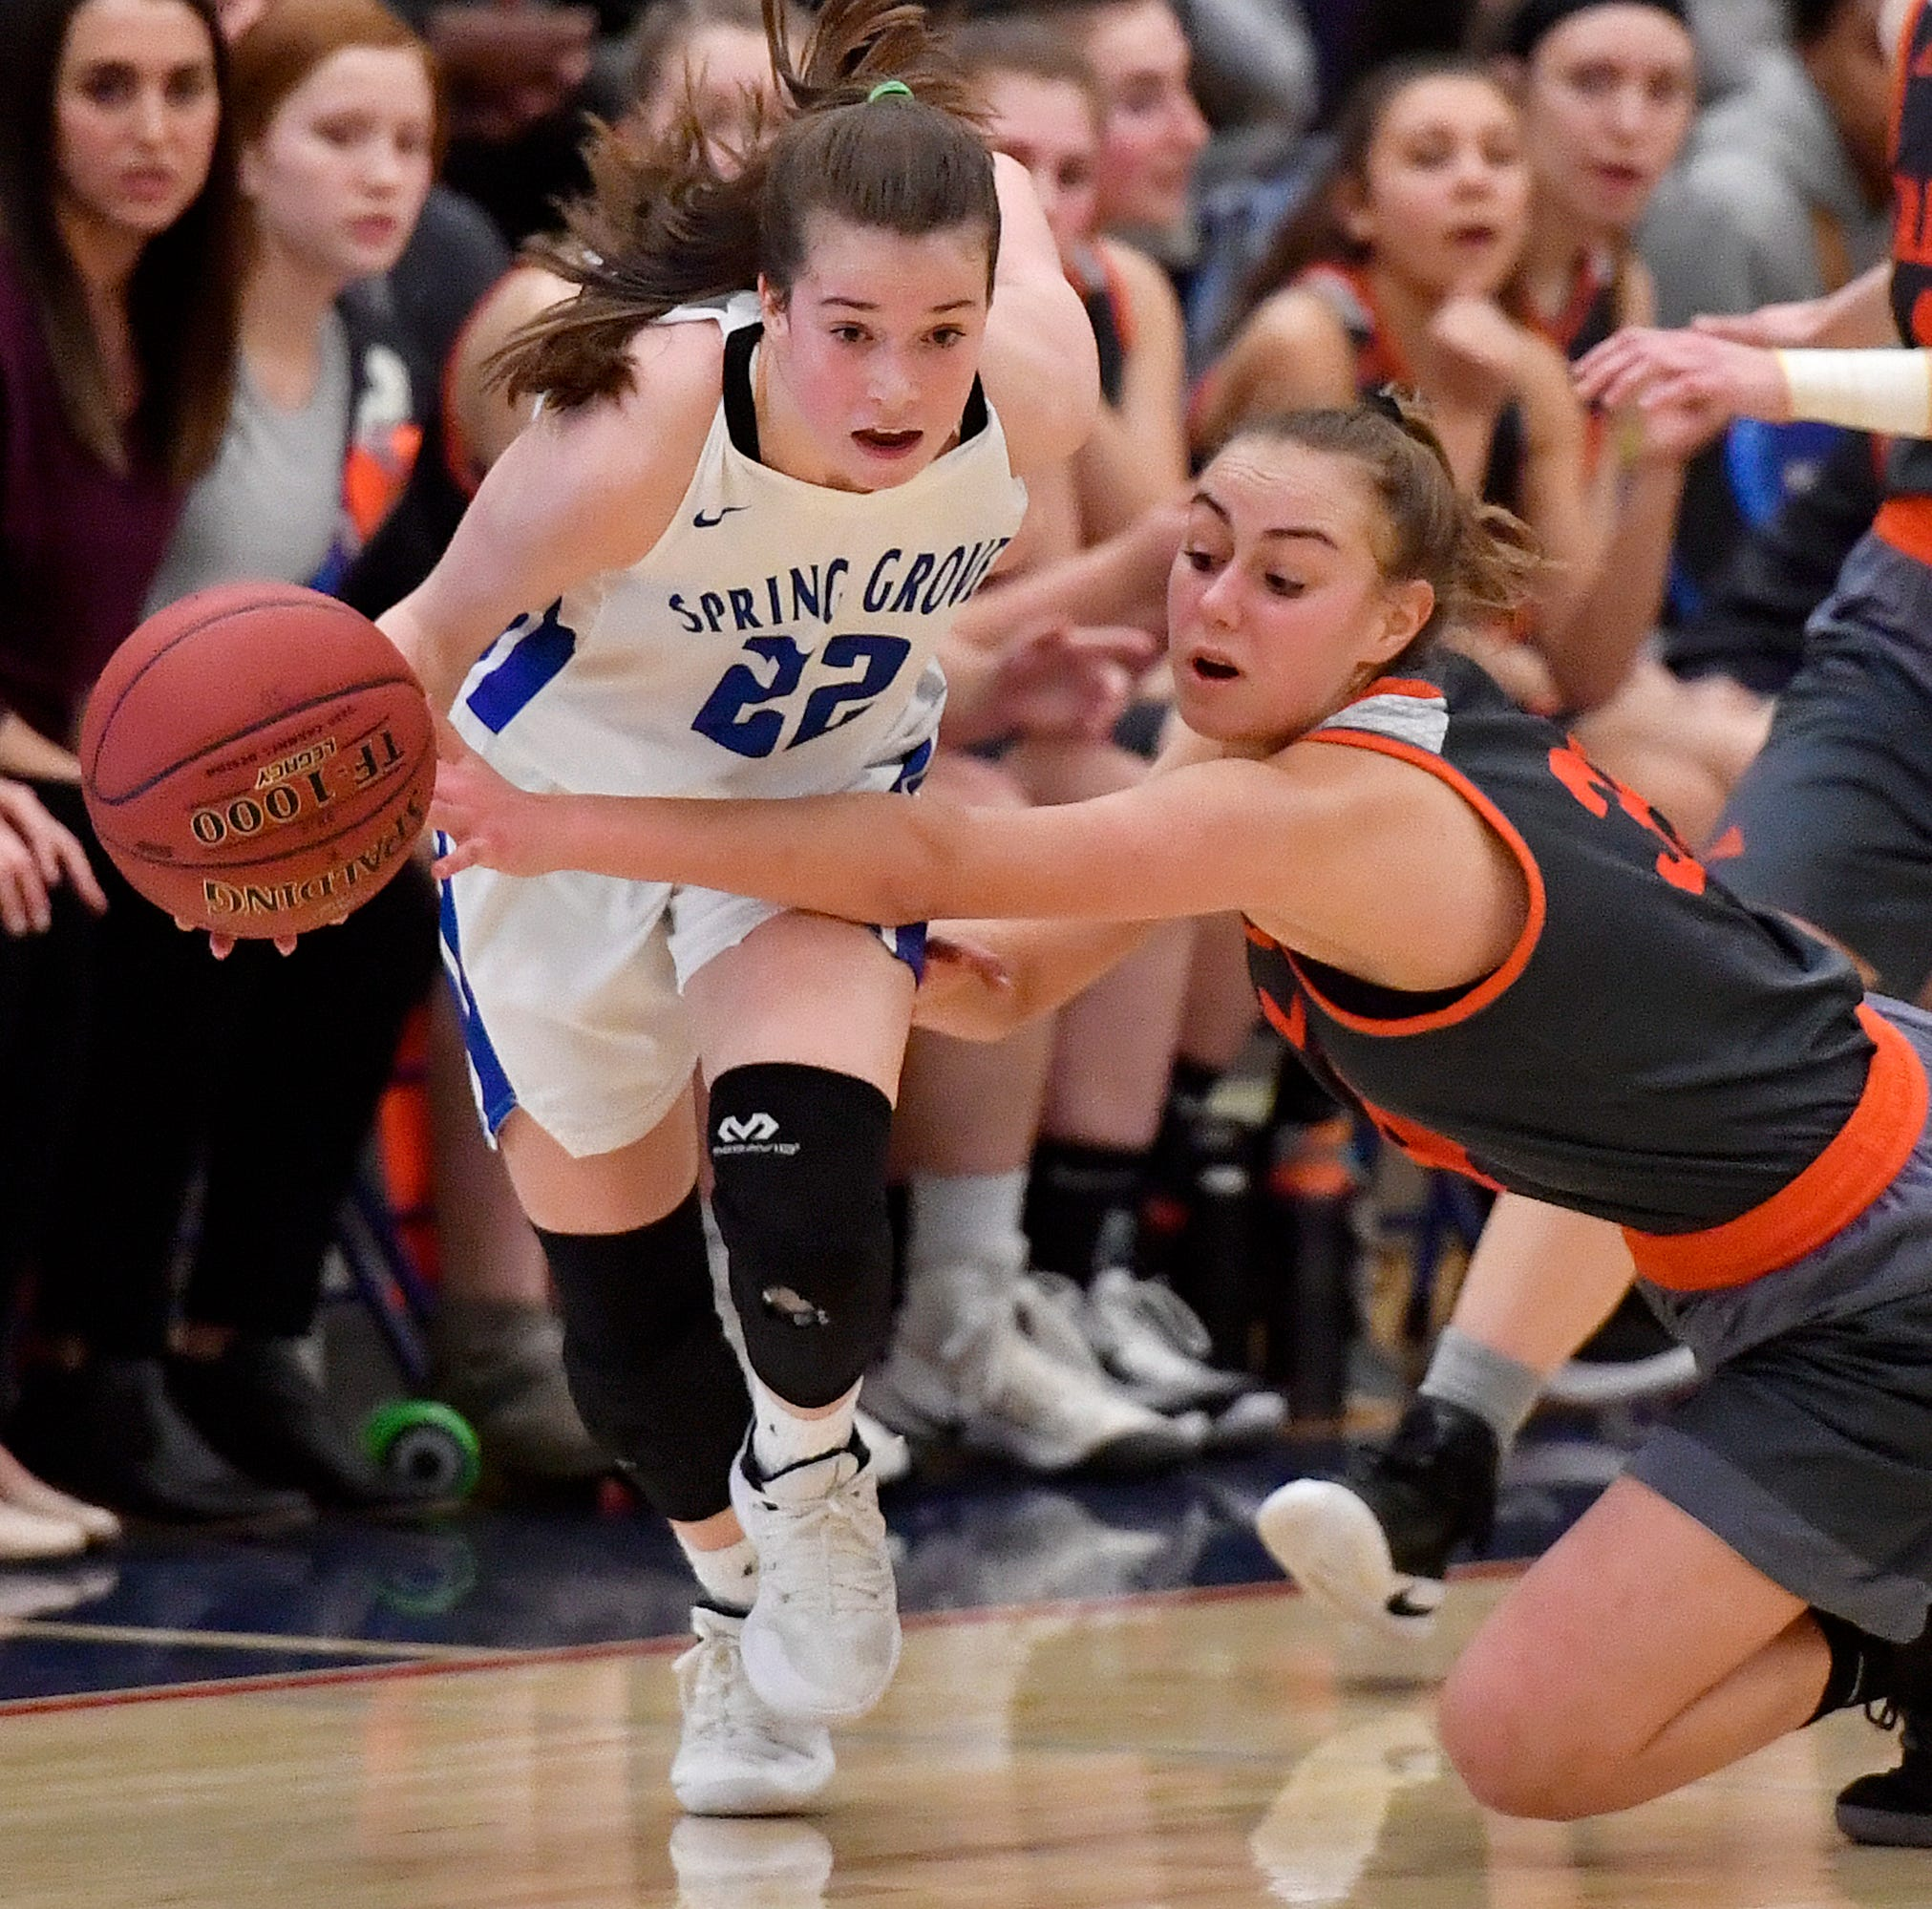 Spring Grove girls fall to Palmyra; coach Troy Sowers says game was 'stolen' by referees